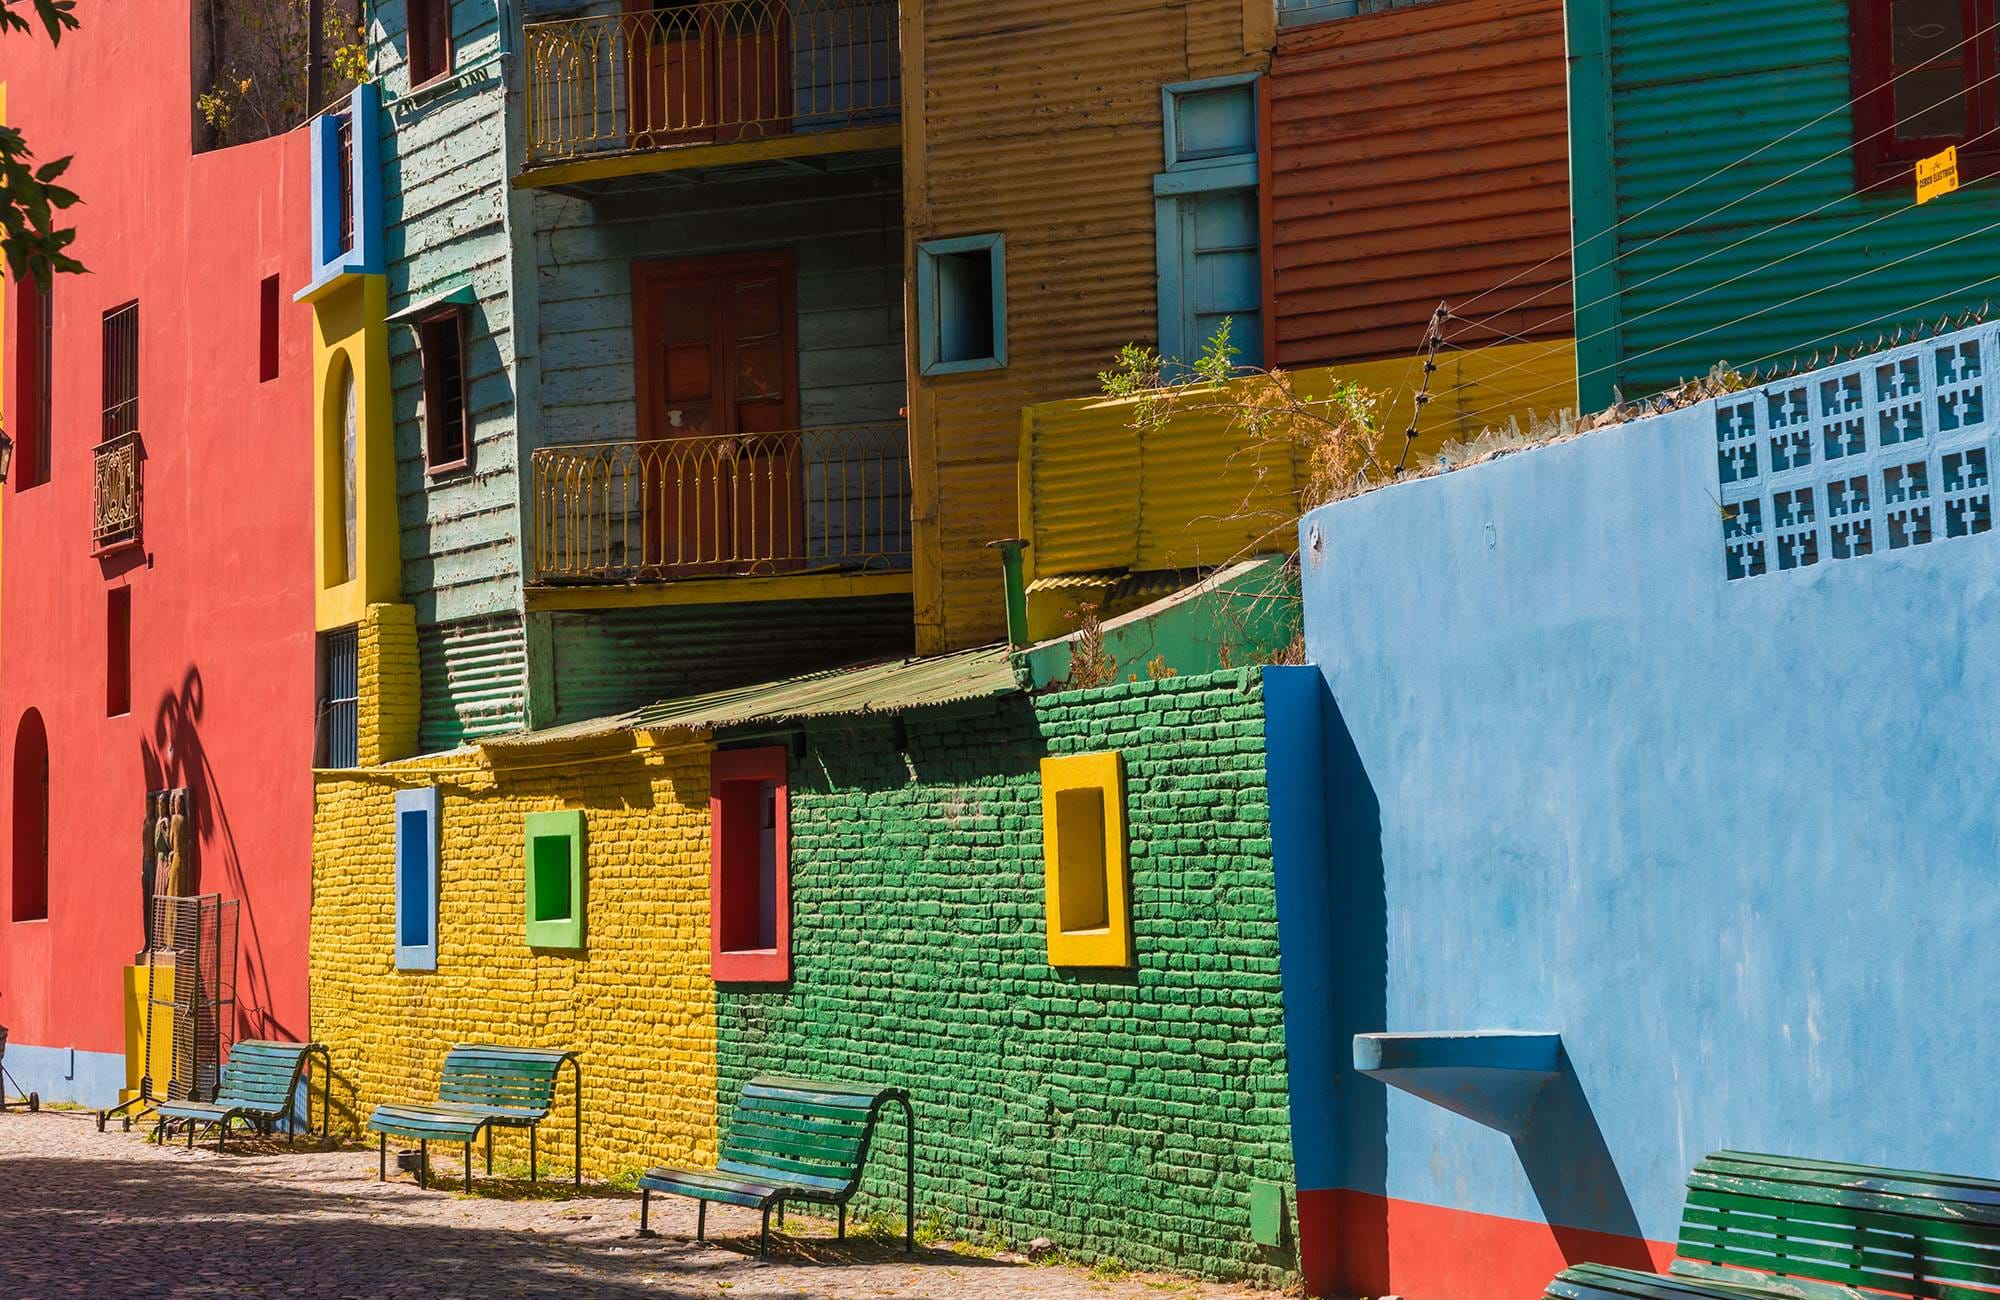 buenos-aires-colorful-area-in-la-boca-neighborhood-cover